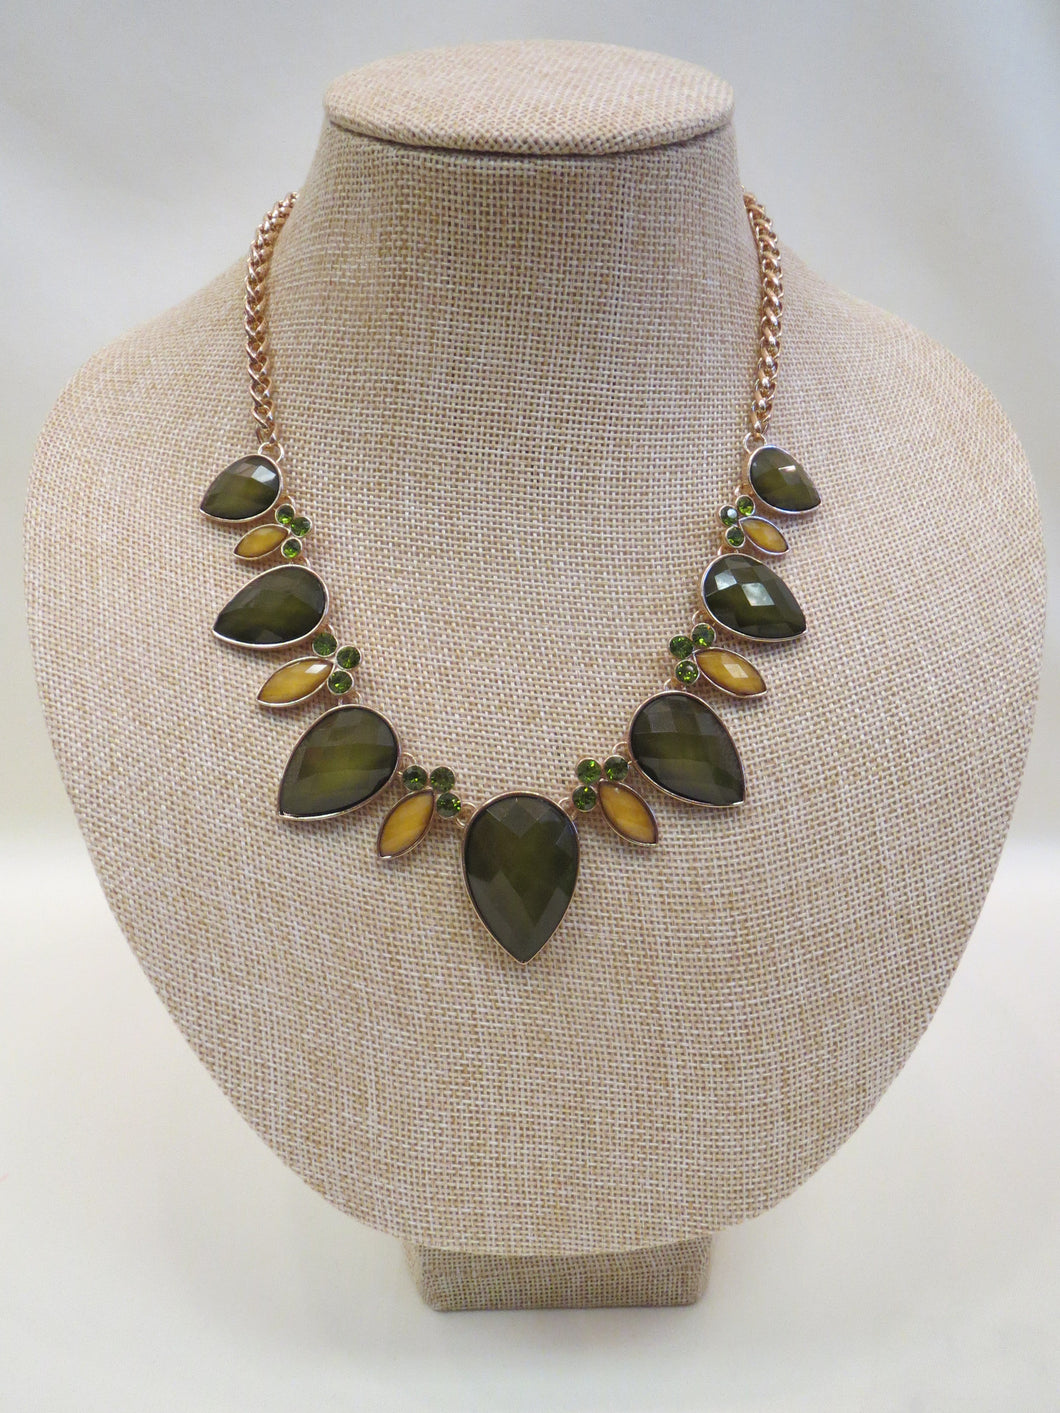 ADO | Teardrop Green & Gold Necklace - All Decd Out